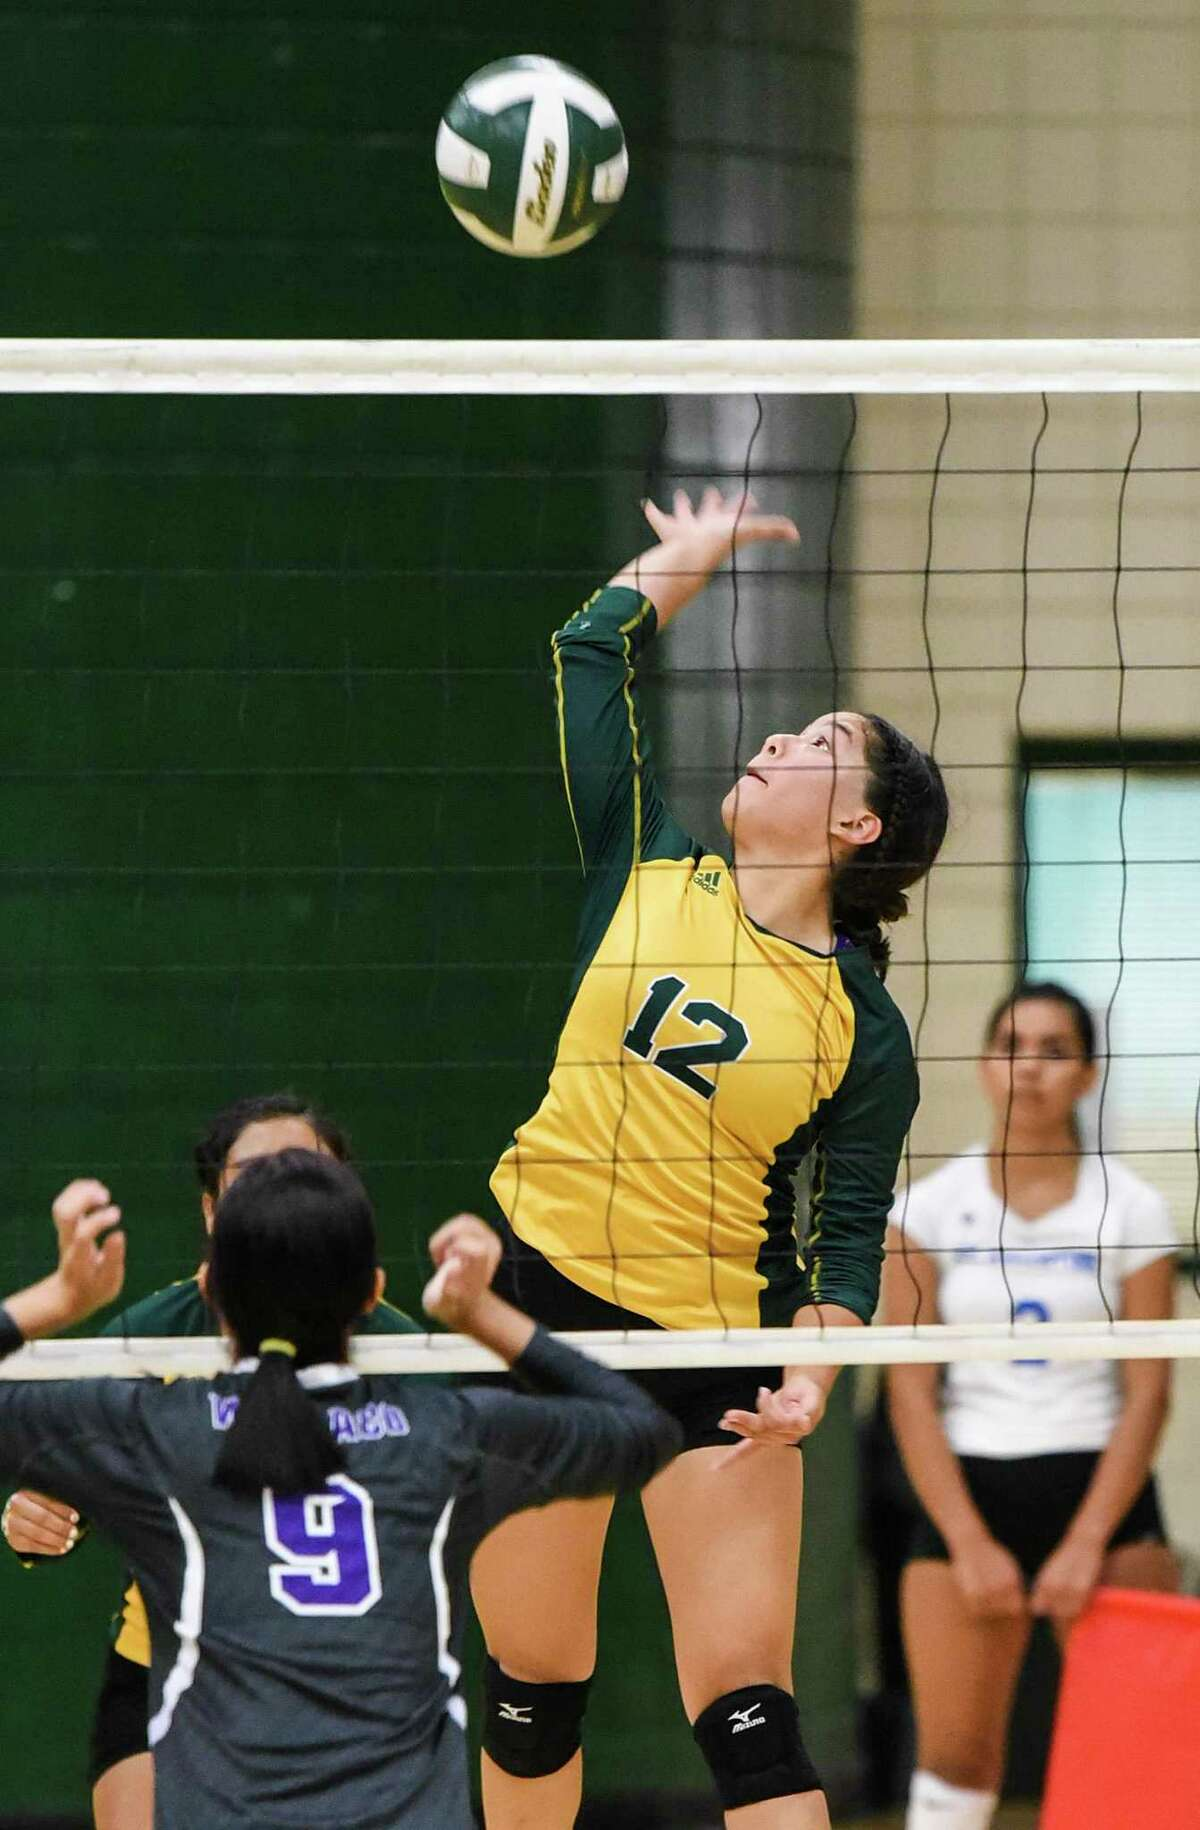 Geraldine Valles combined for 32 kills in a pair of 3-1 victories Wednesday as Nixon beat Alice and Kingsville in a tri-match.